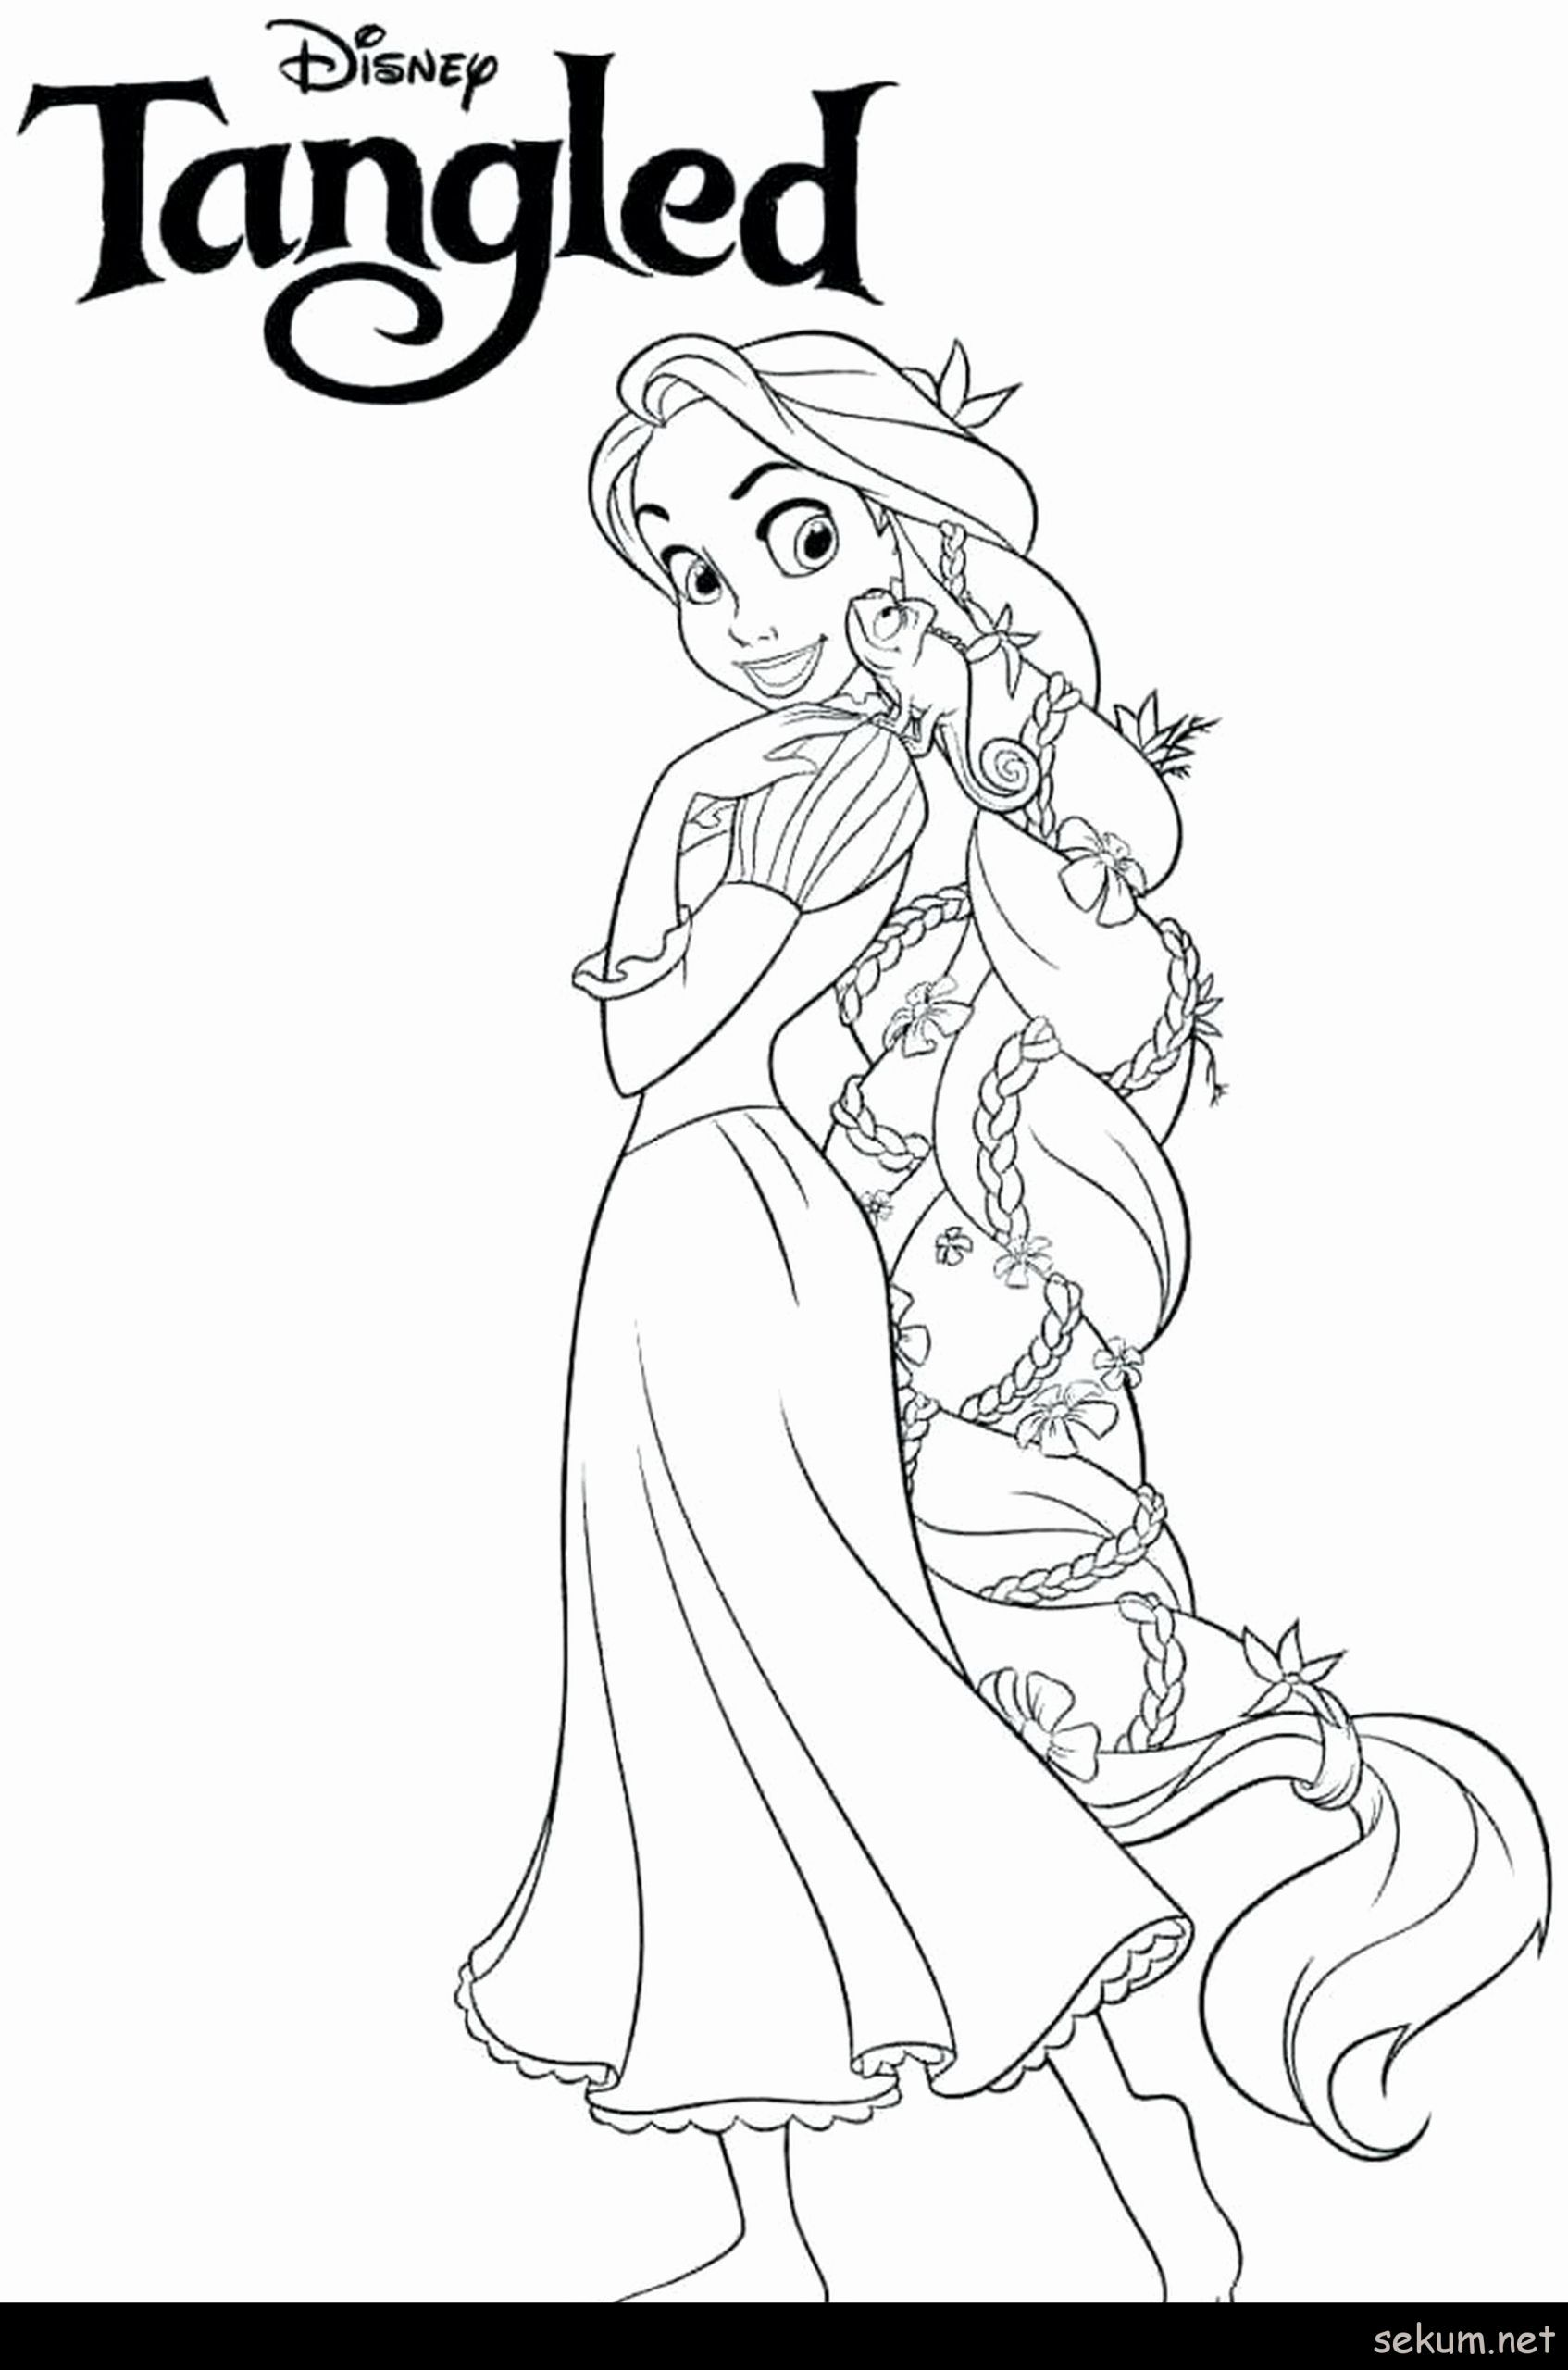 - Pin On Coloring Pages For Kids Disney